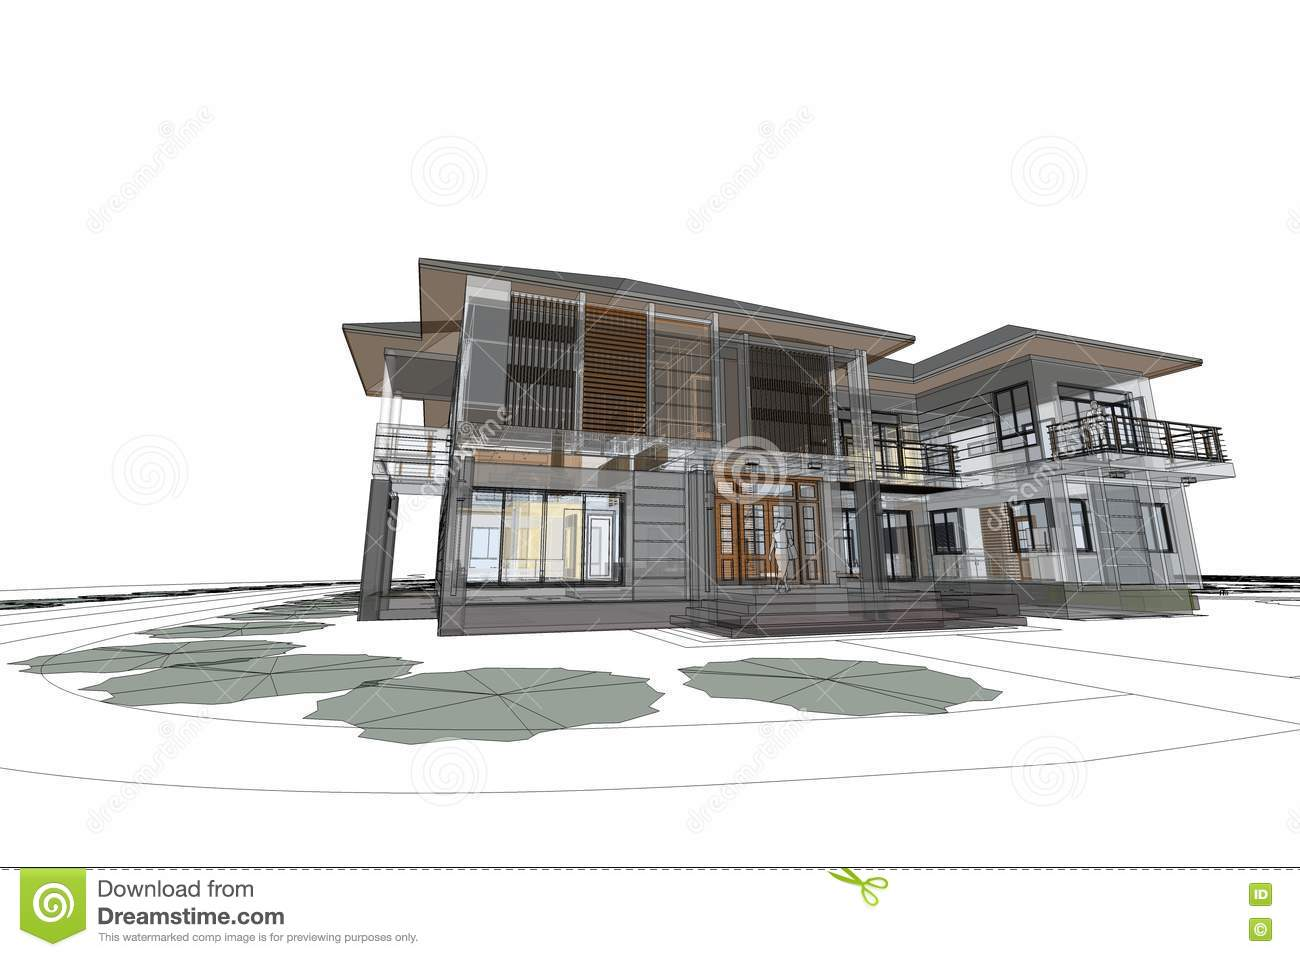 Architecture dessinant l 39 illustration moderne de la maison Architecture 3d maison